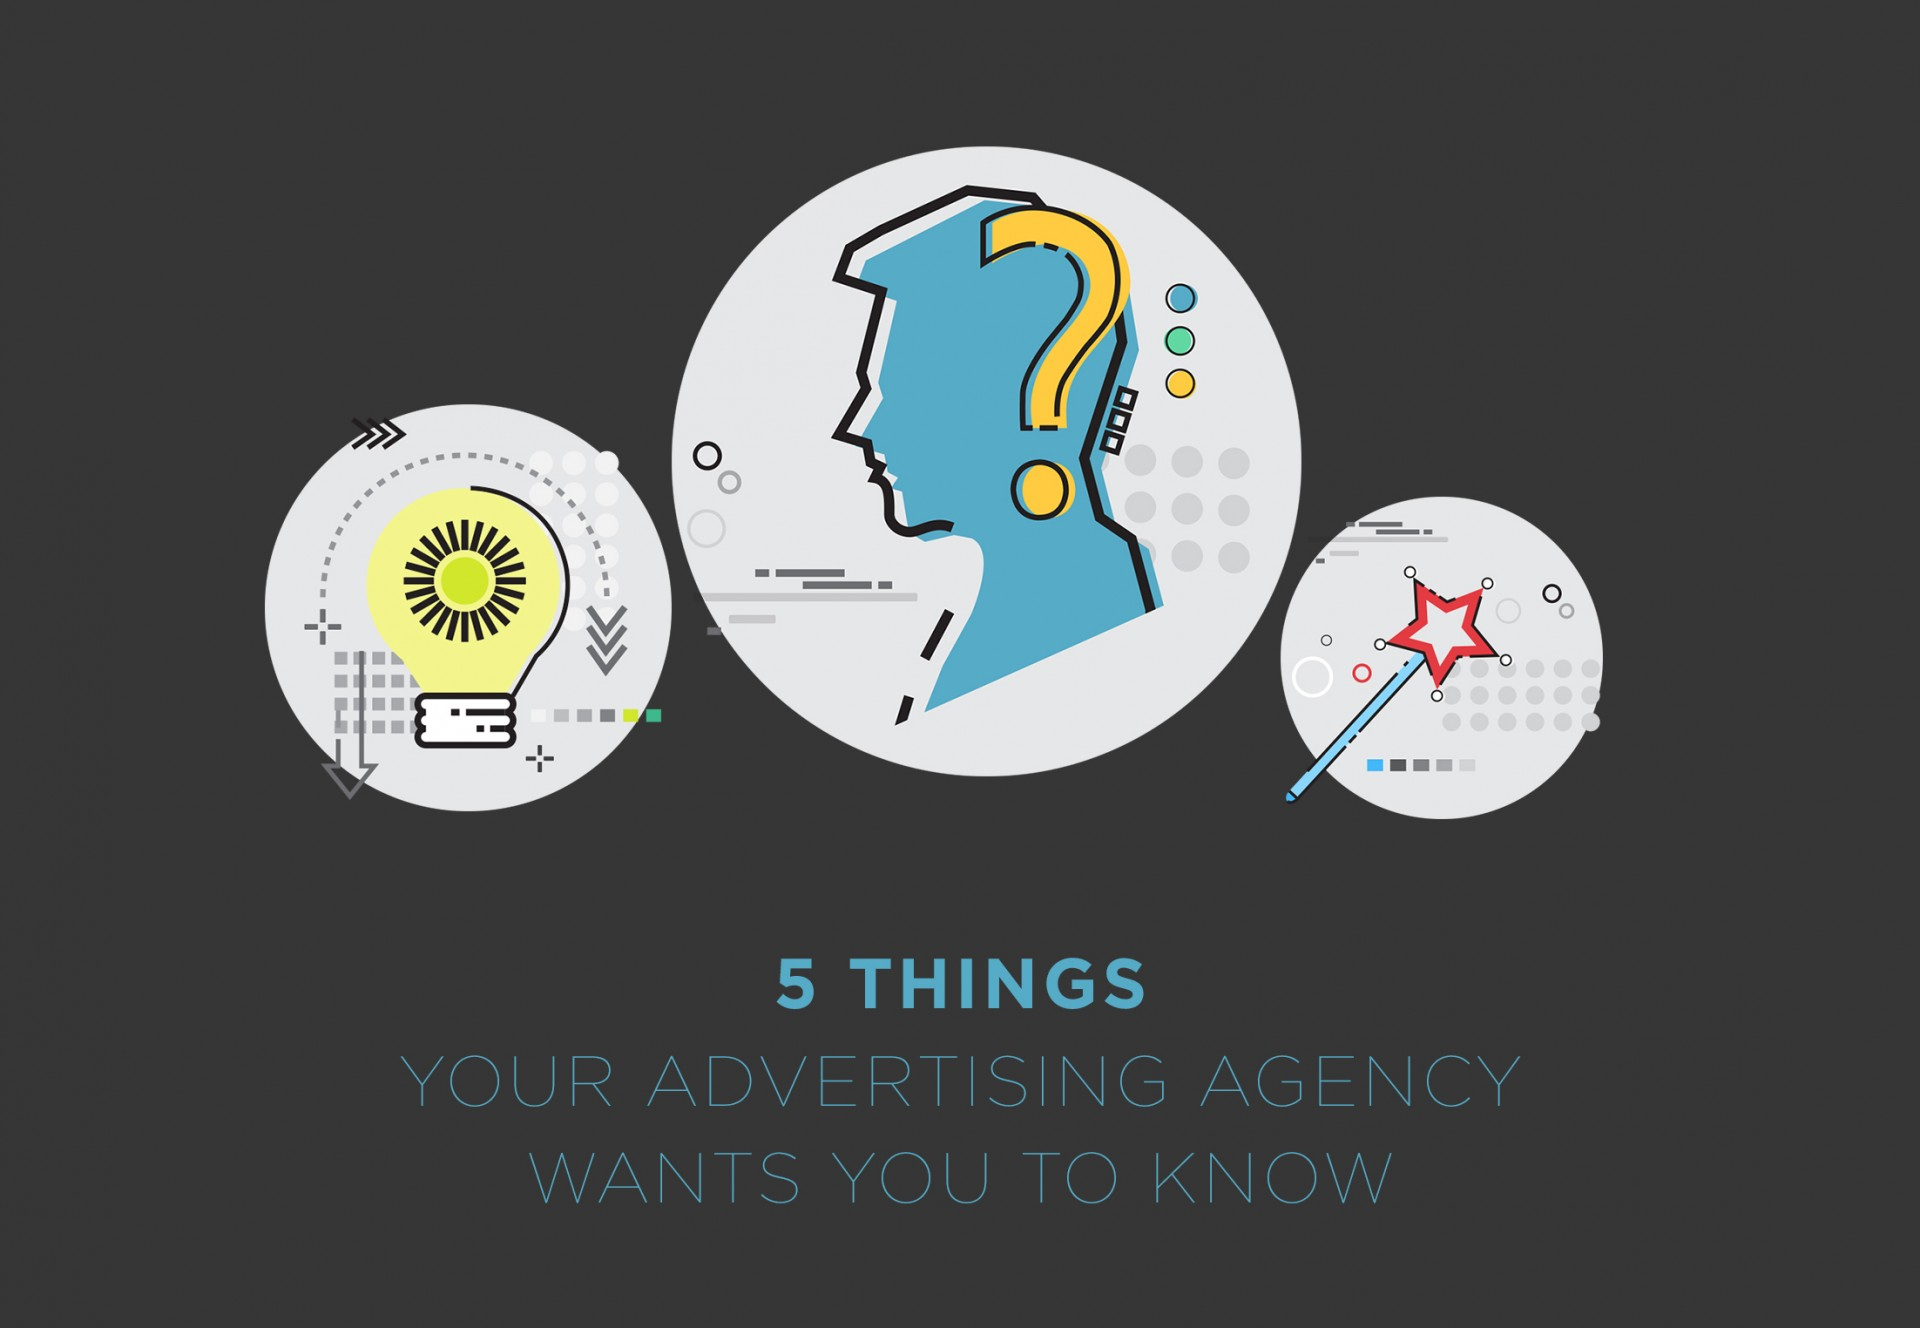 5 Things Your Advertising Agency Wants You to Know